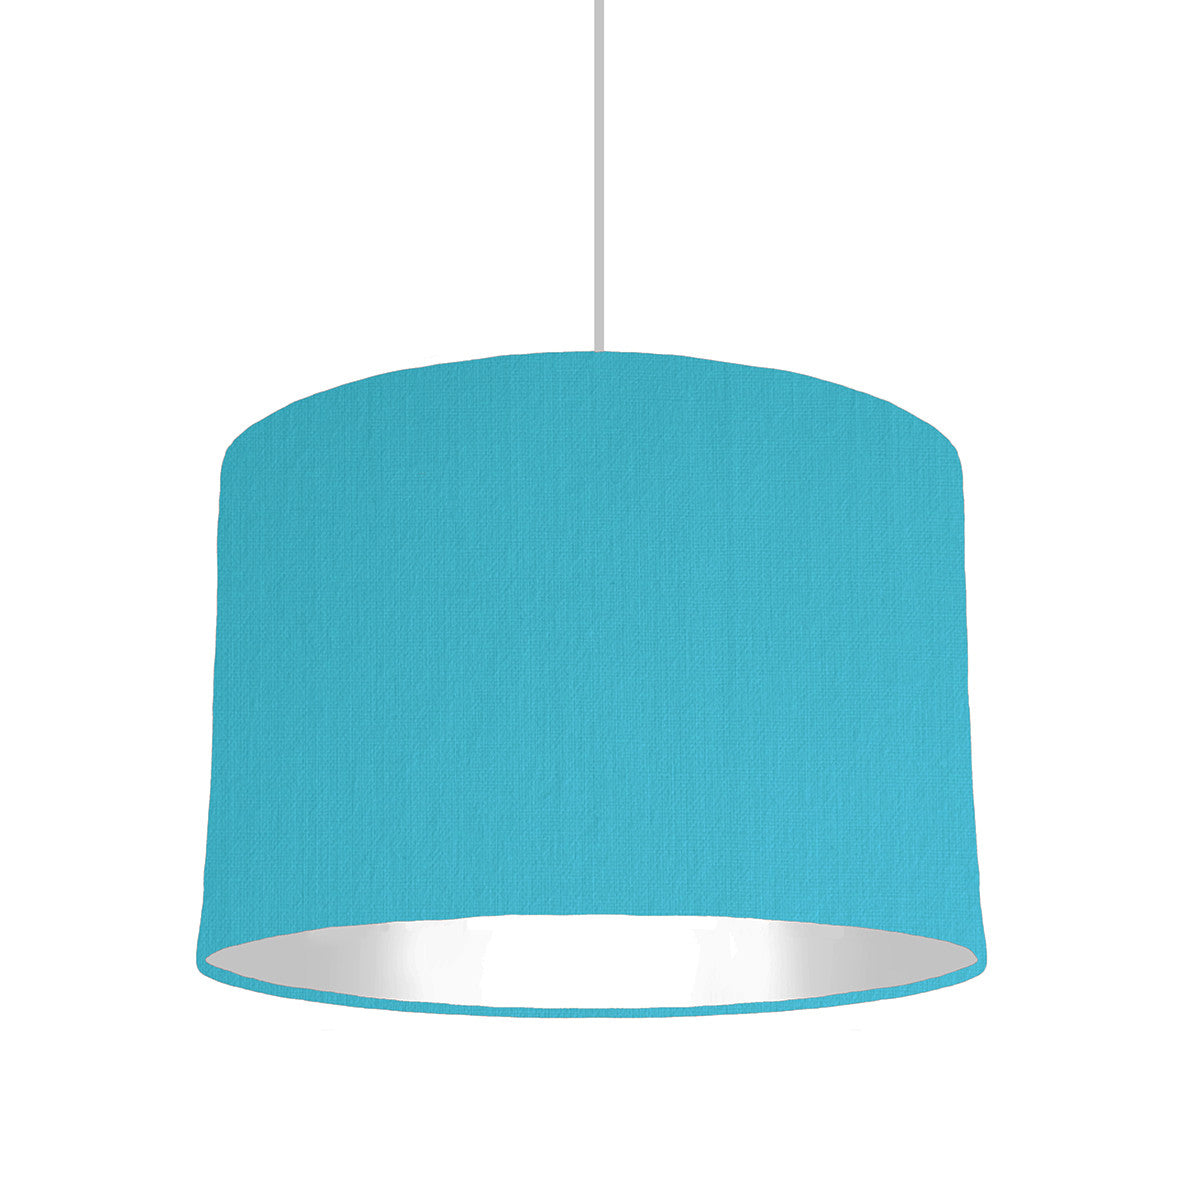 Turquoise Blue Lampshade With White Lining, 30cm wide